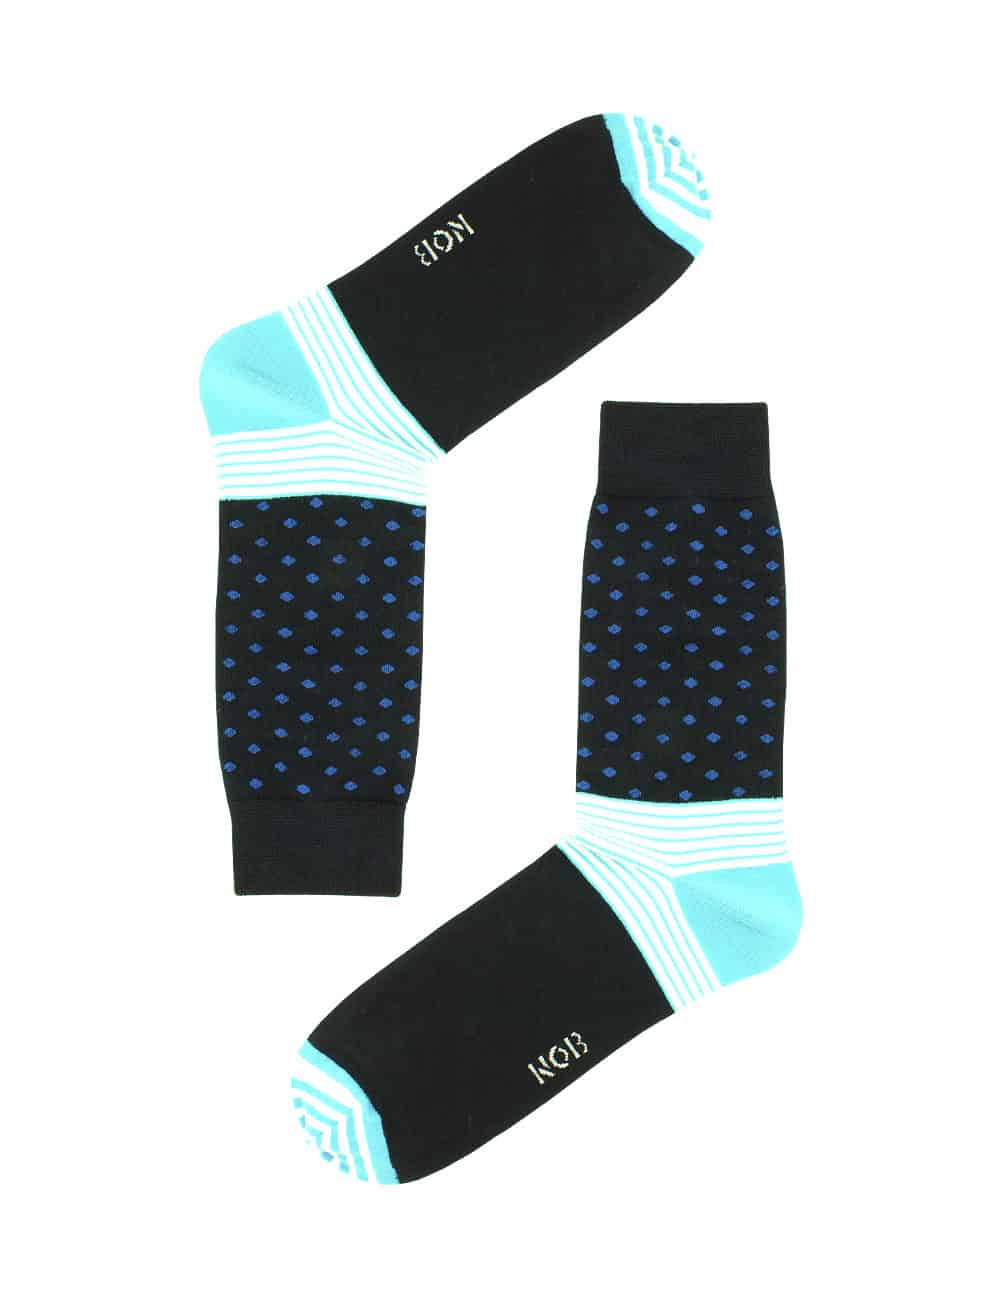 NAVY WITH BLUE POLKA DOTS CREW SOCKS SOC2C.NOB1